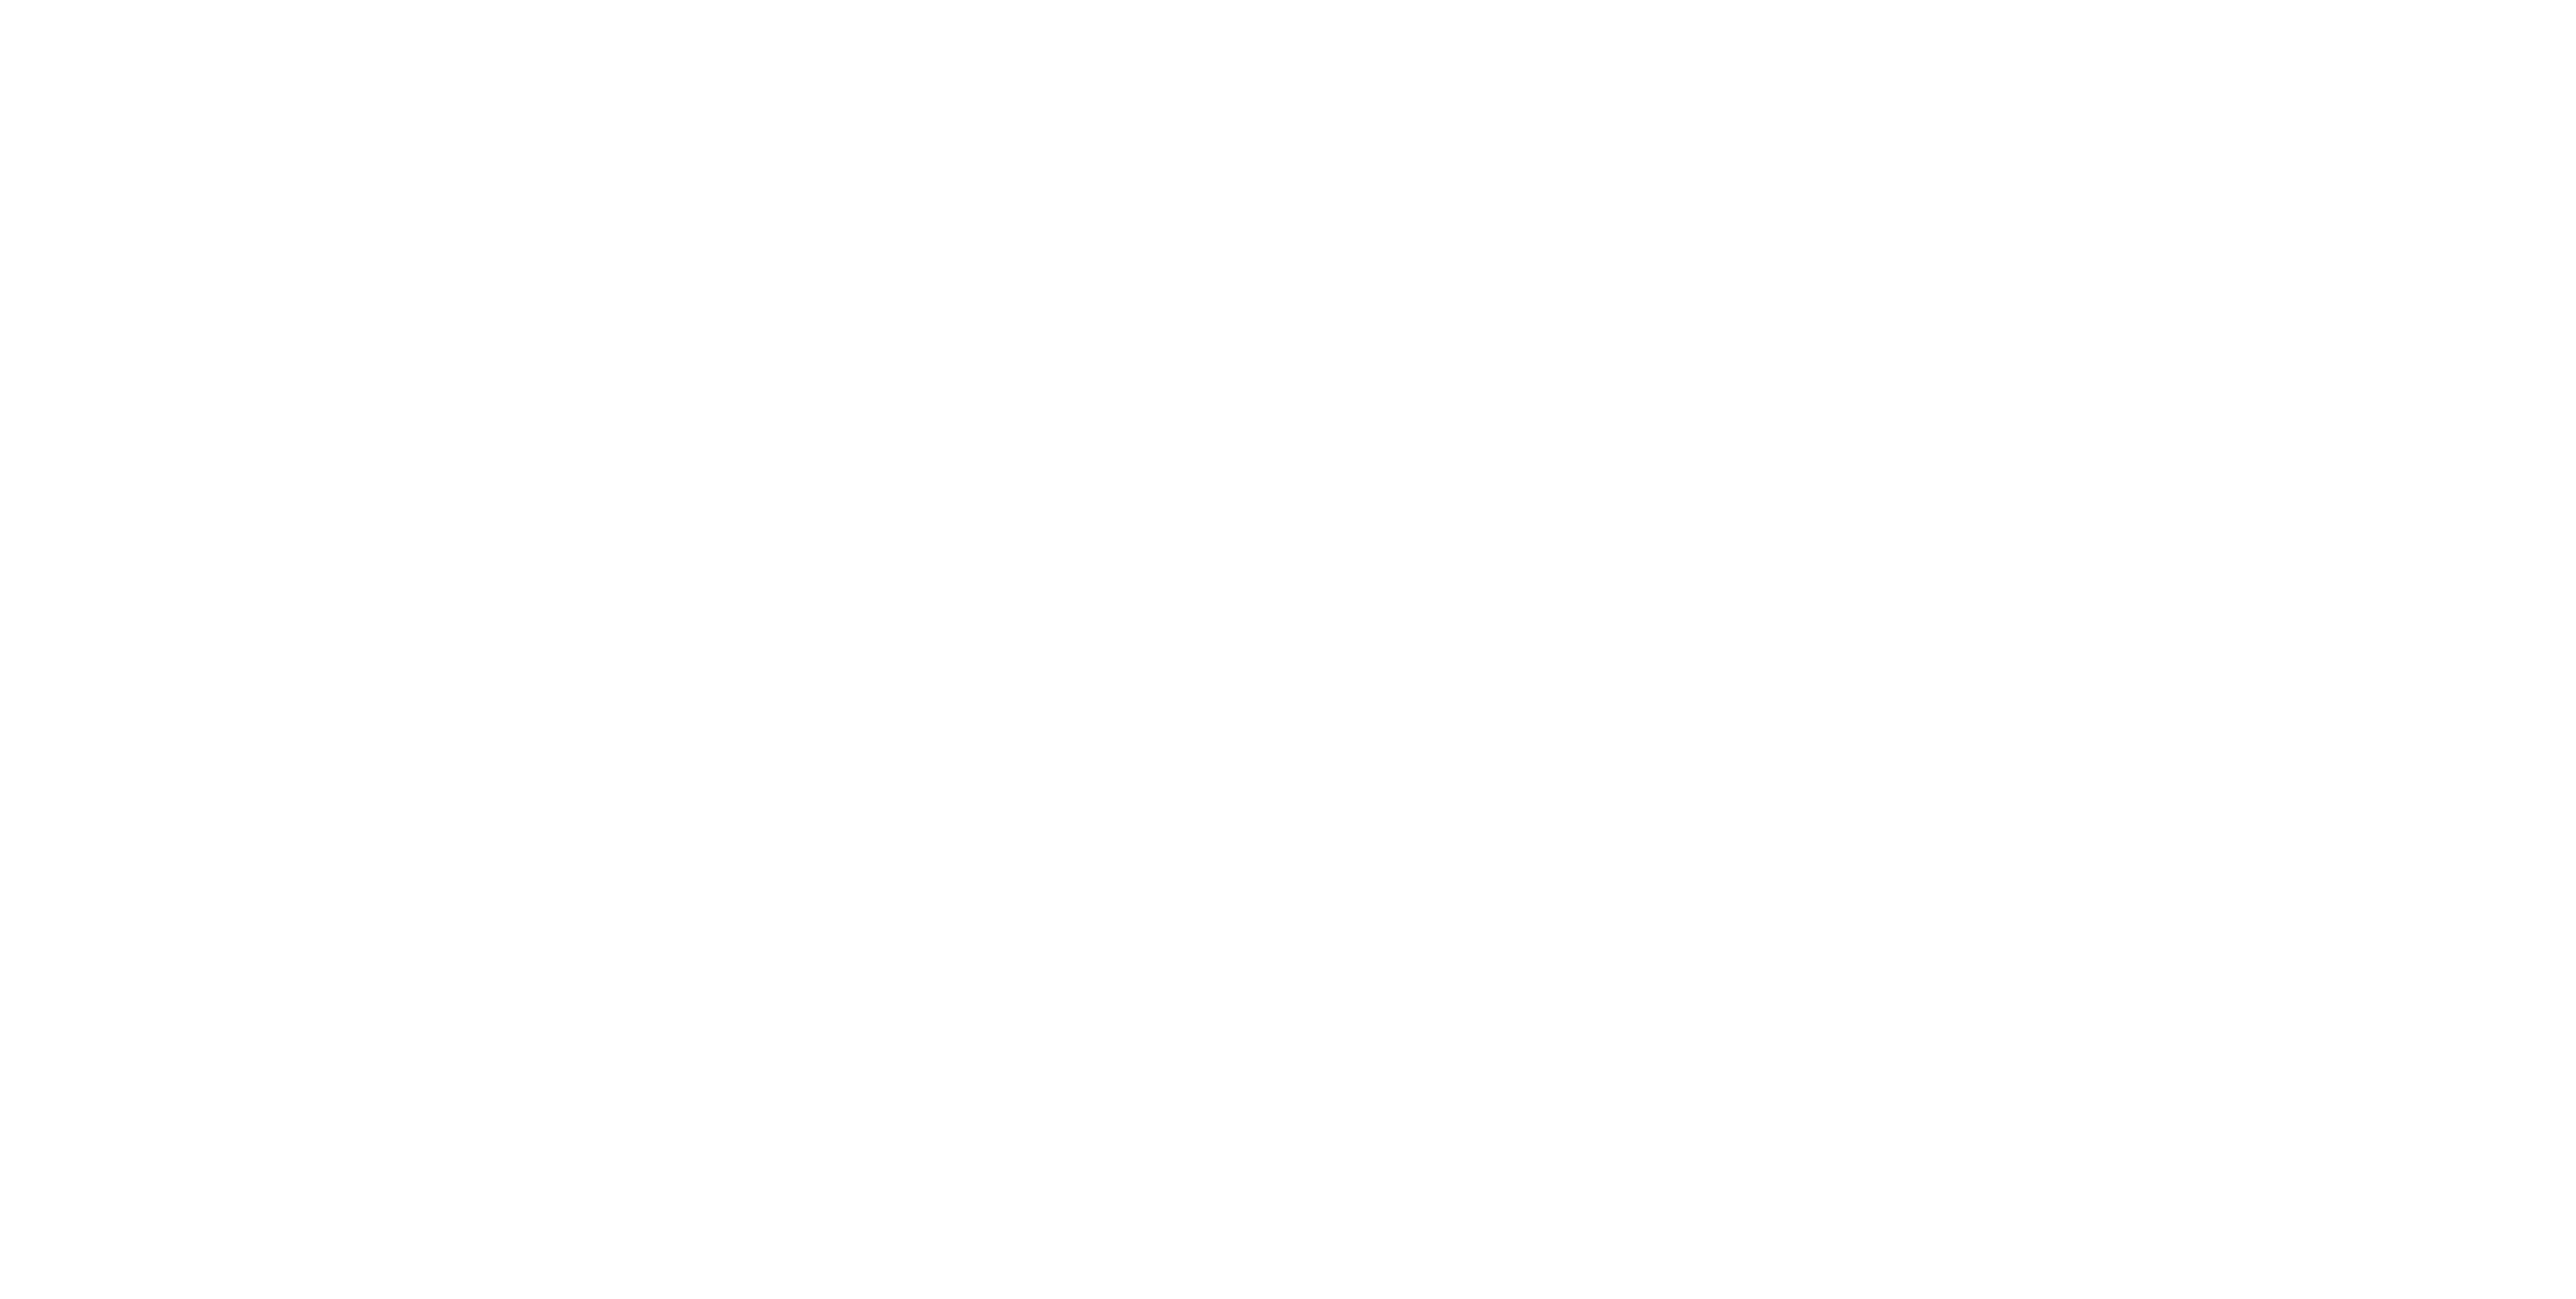 Big Picture Film Club